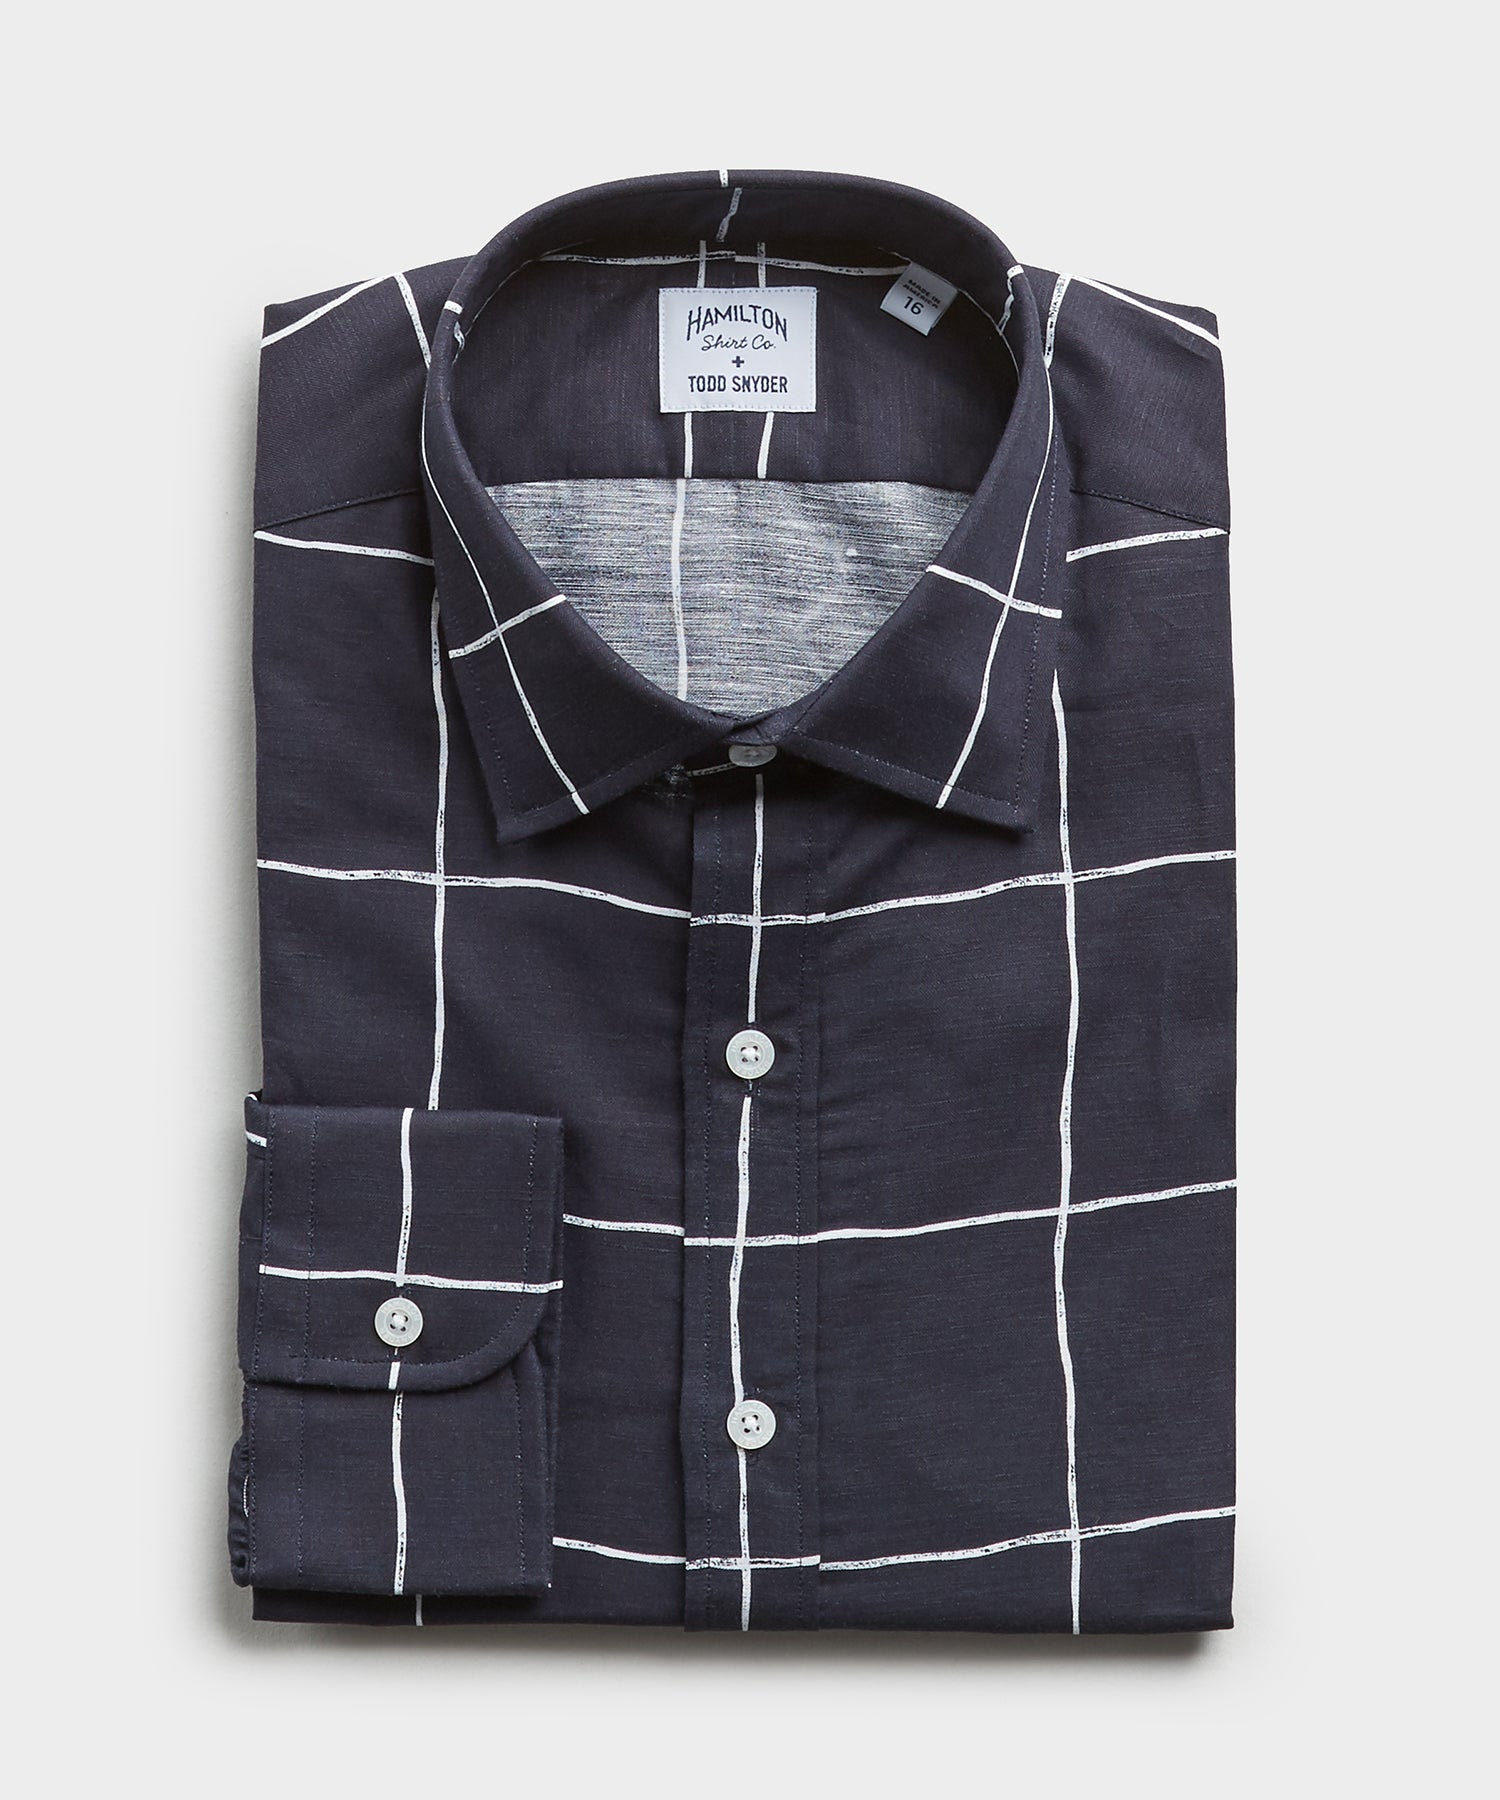 Made in the USA Hamilton + Todd Snyder Windowpane Shirt in Navy